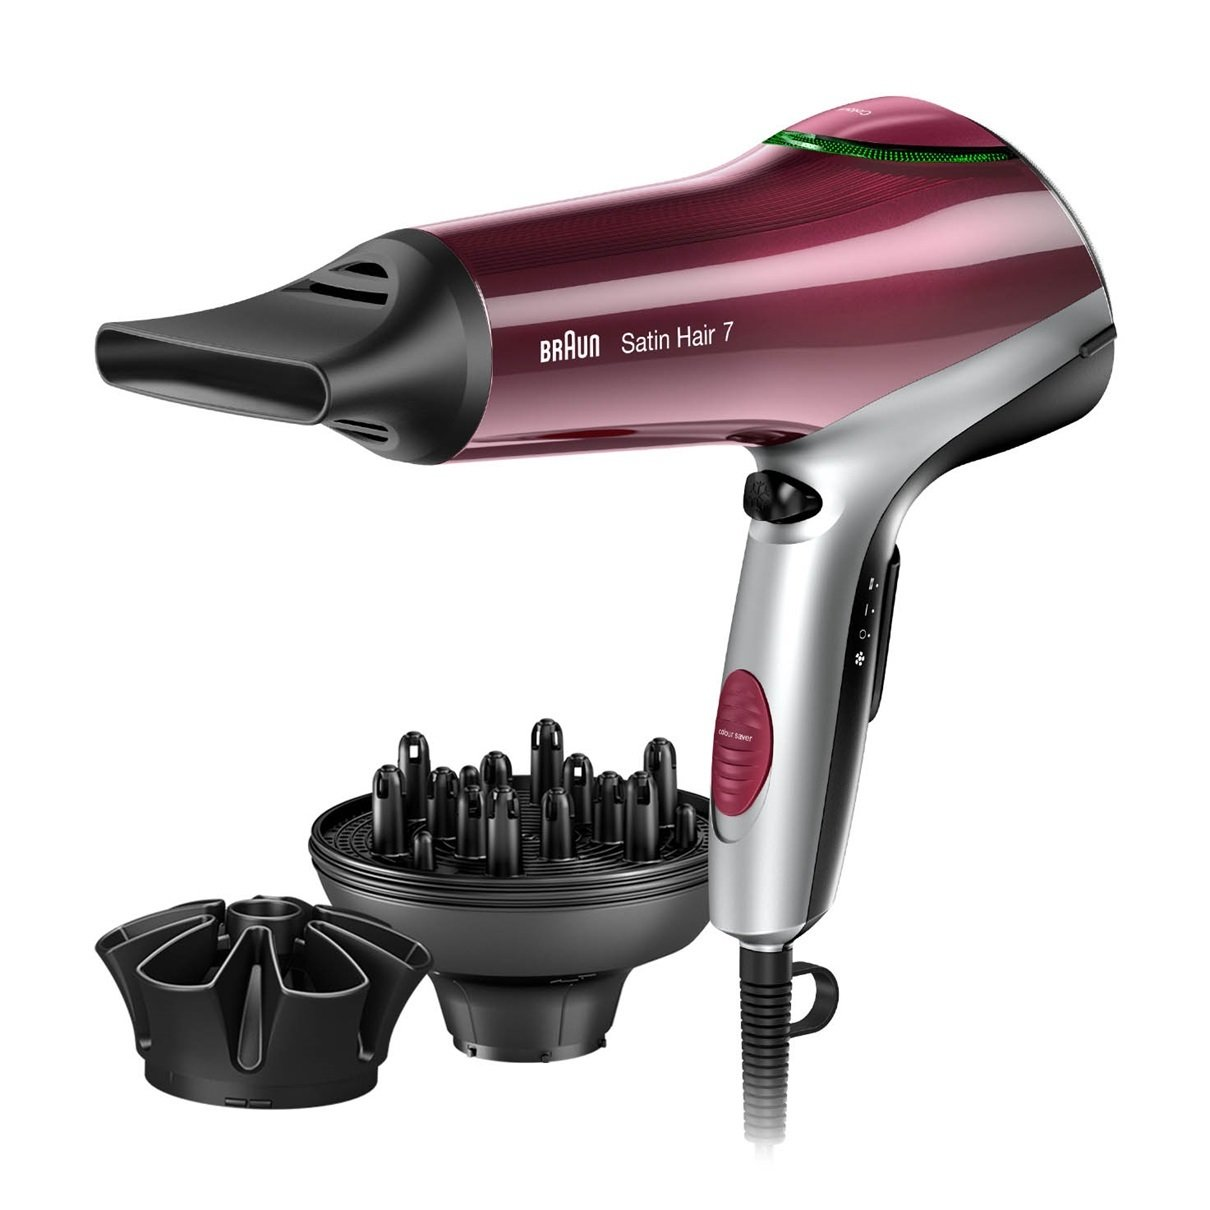 Braun Satin Hair 7 Colour Dryer HD770